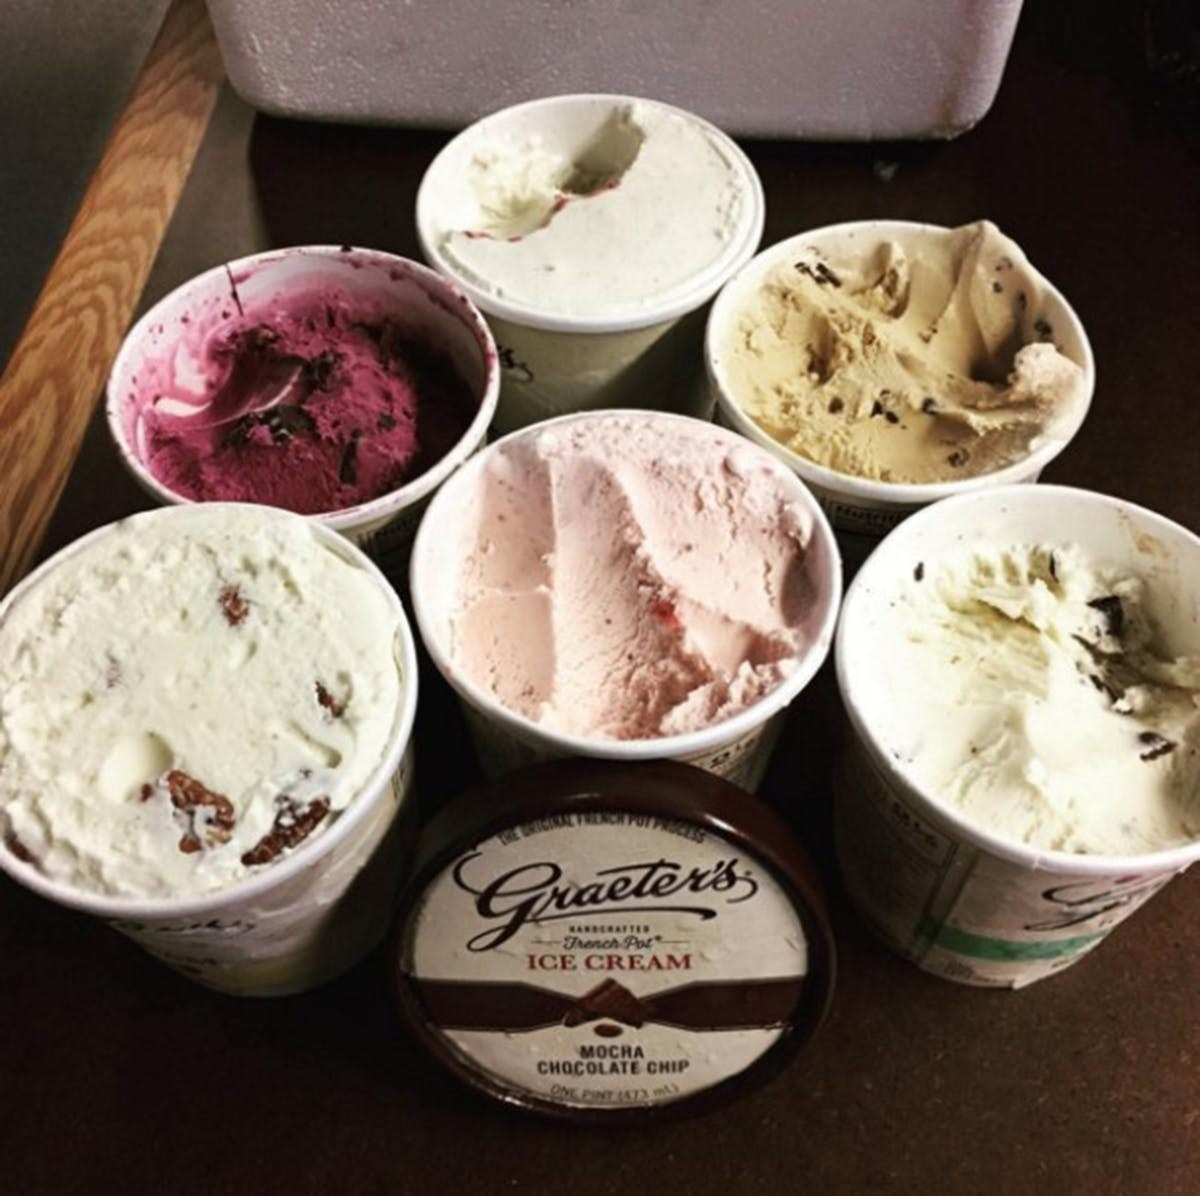 Seven pints of different ice cream flavors